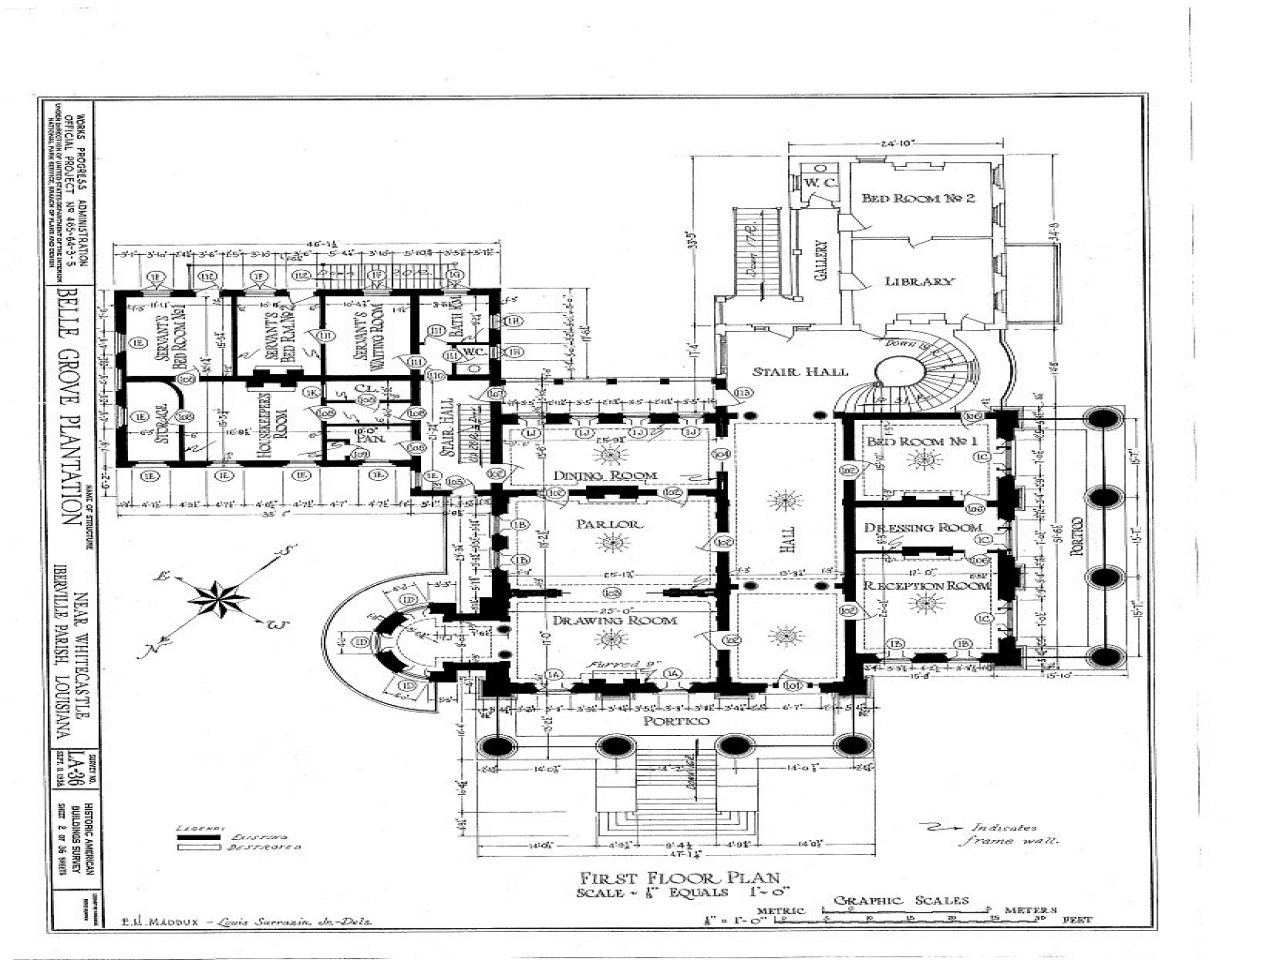 Wright House Floor Plan on frank lloyd wright building plans, wright house drawings, blueprints for houses with open floor plans, wright medical, cantilever plans, frank lloyd wright home floor plans, frank lloyd wright inspired home plans, castle plans, frank lloyd wright site plans, wright style home plans, frank lloyd wright furniture plans,